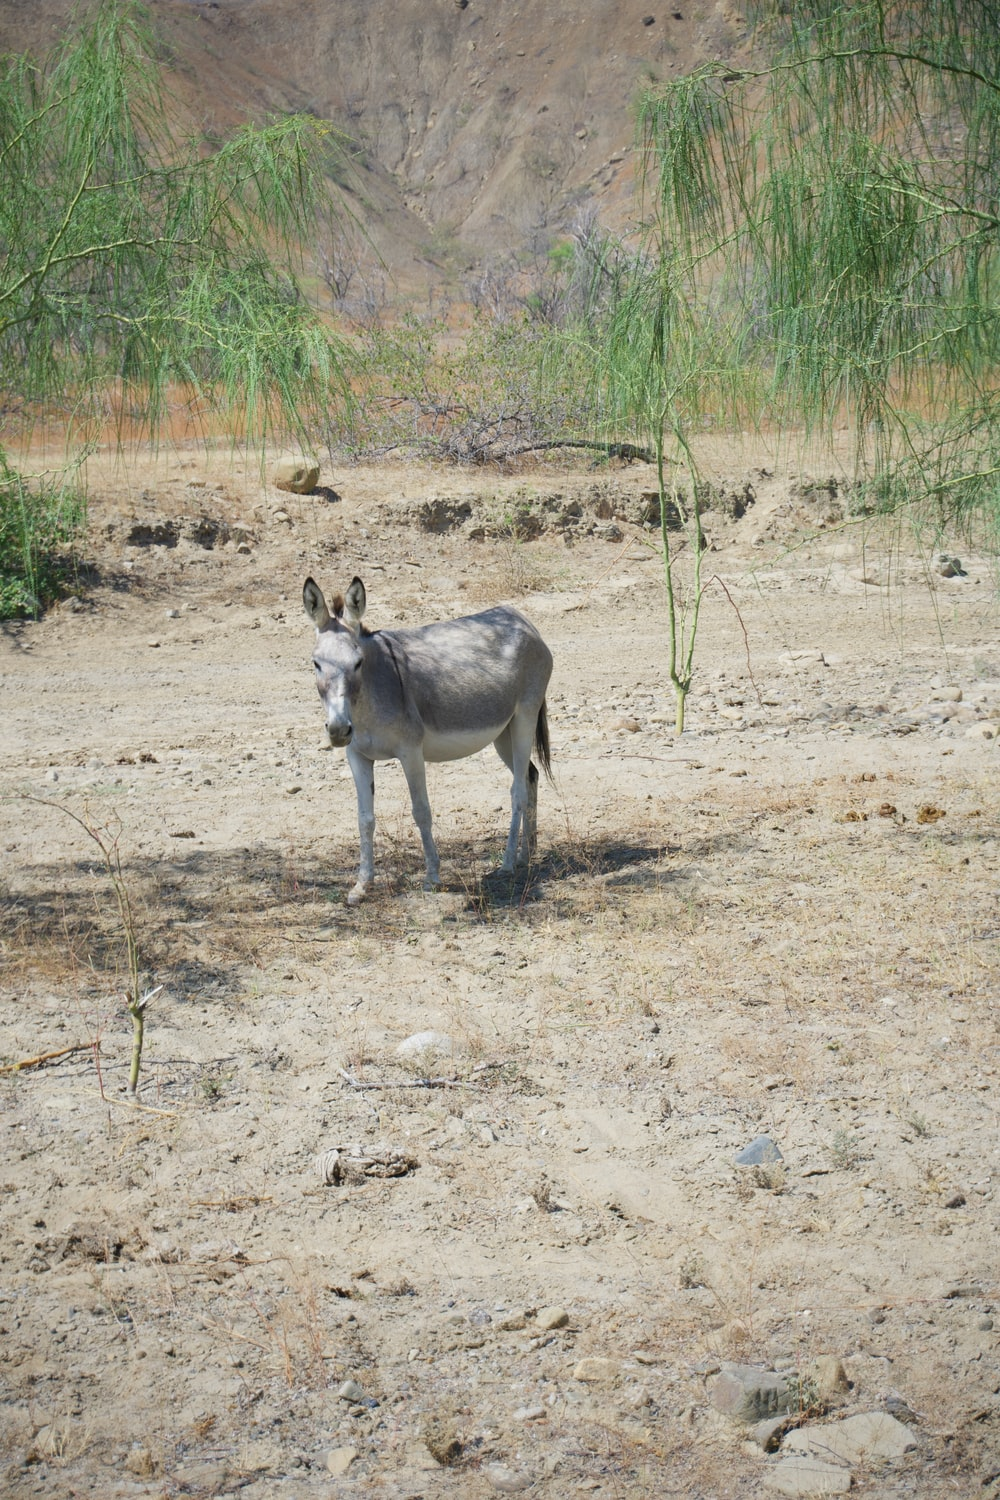 gray and white animal on brown dirt ground during daytime